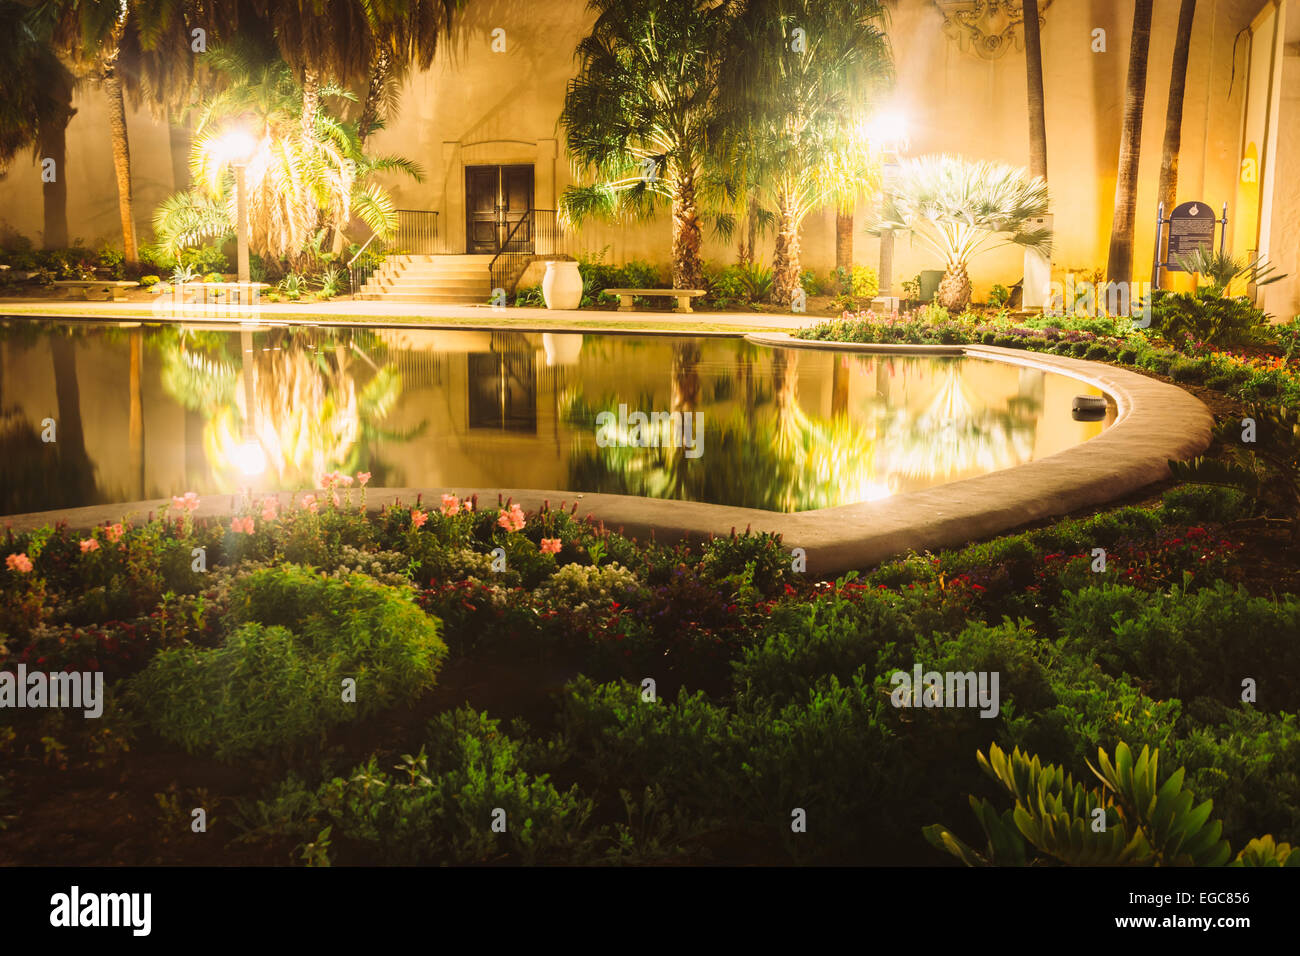 Garden And The Lily Pond At Night, At Balboa Park, In San Diego,